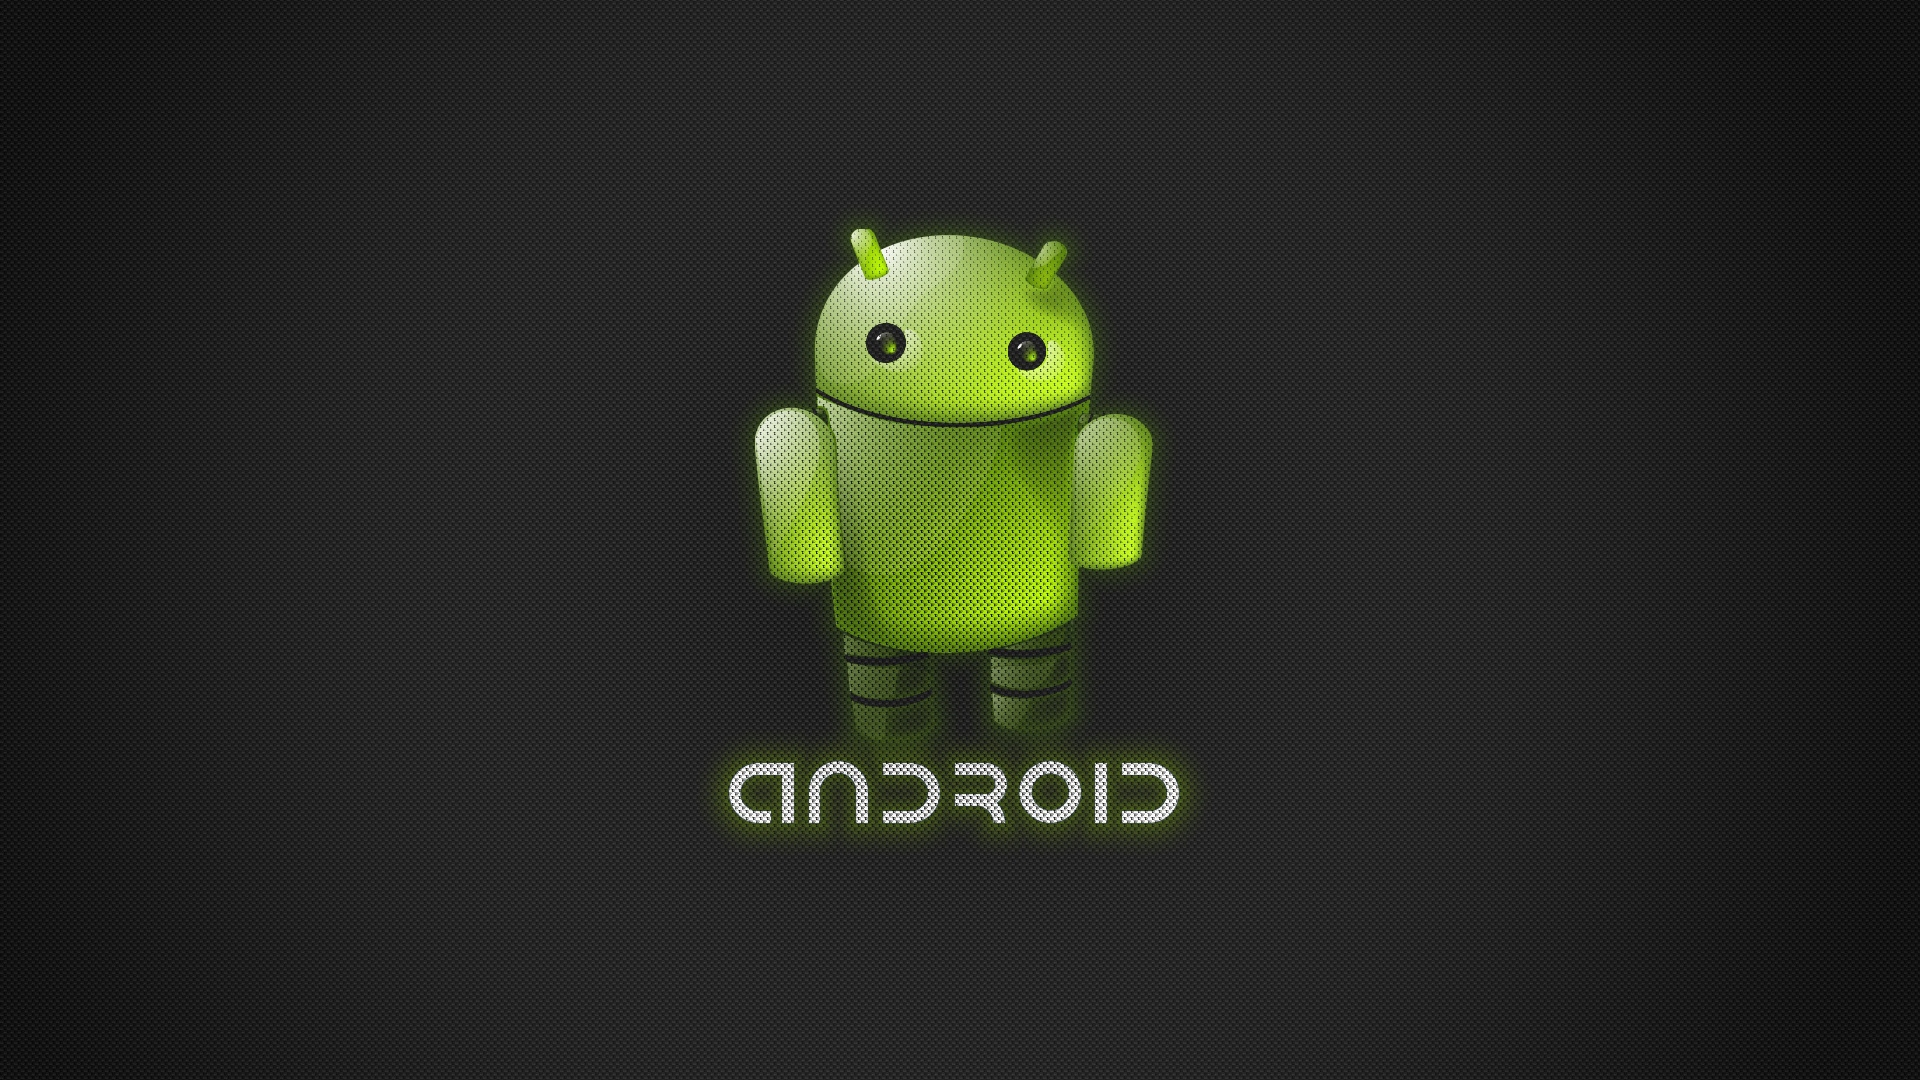 get the latest robot green android news pictures and videos and learn all about robot green android from wallpapers4u org your wallpaper news source